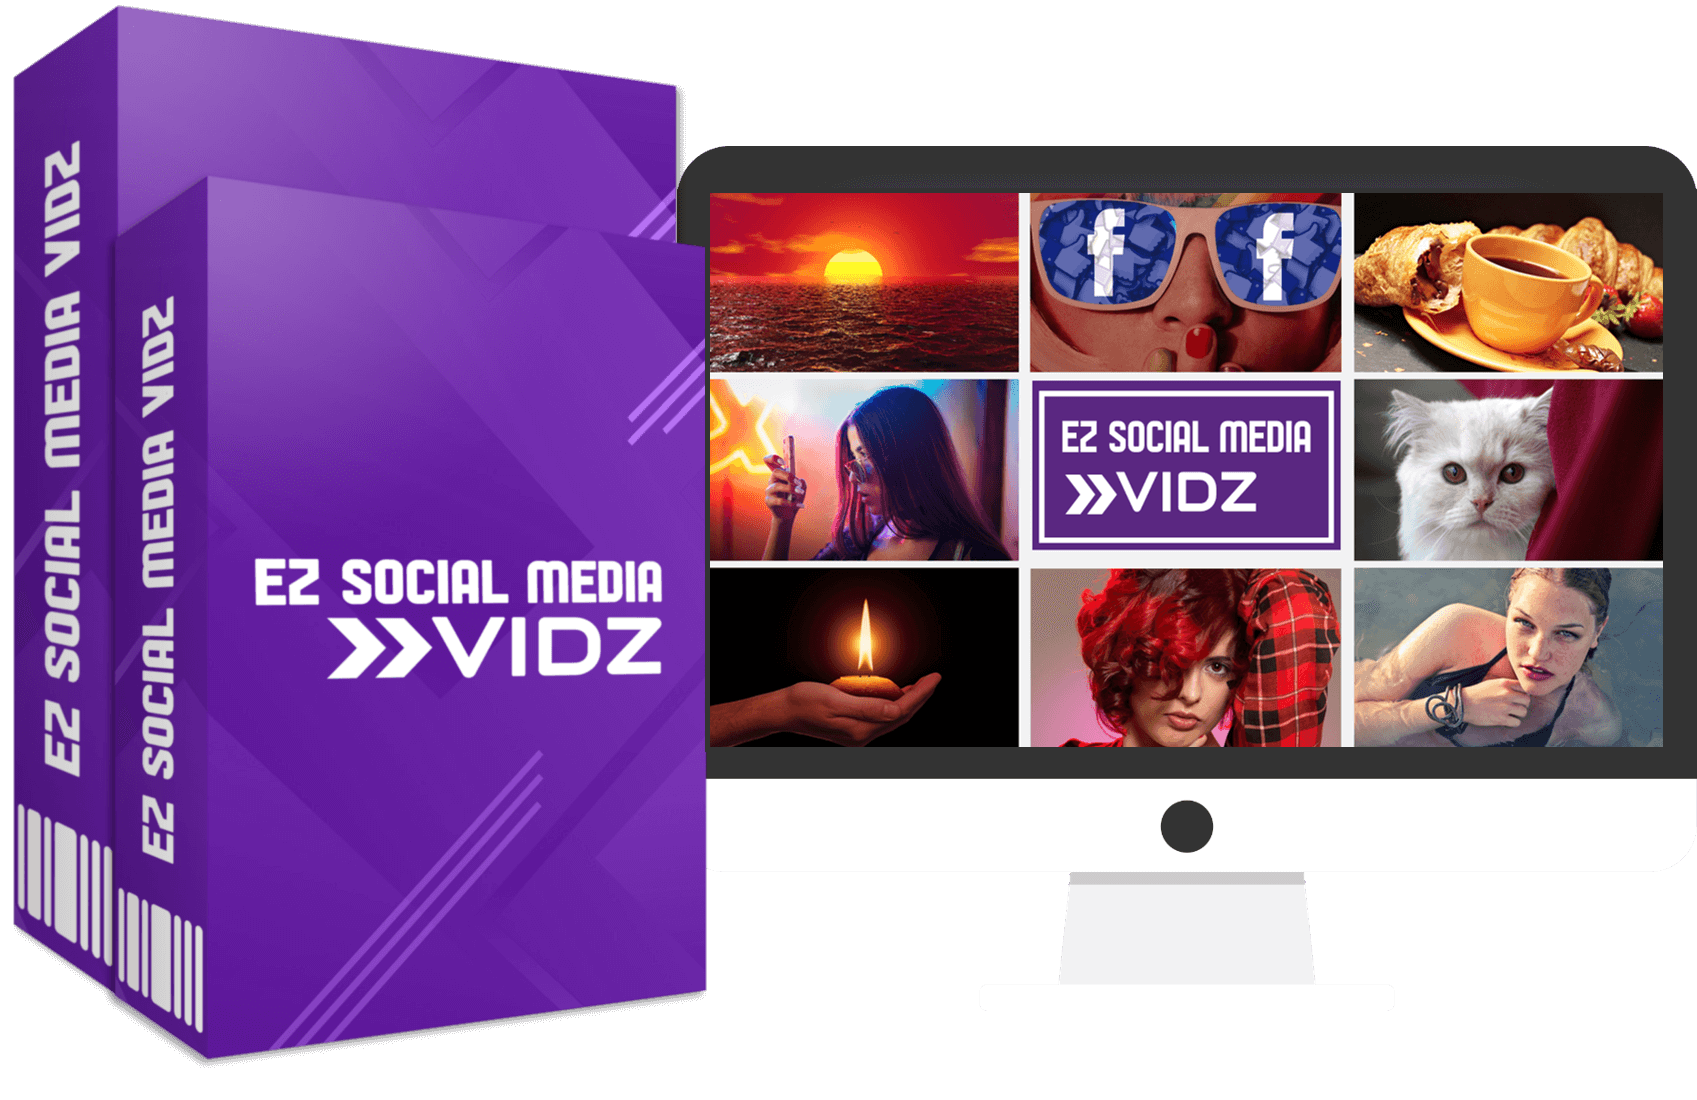 EZ_Social_Media_Vidz_Display-box